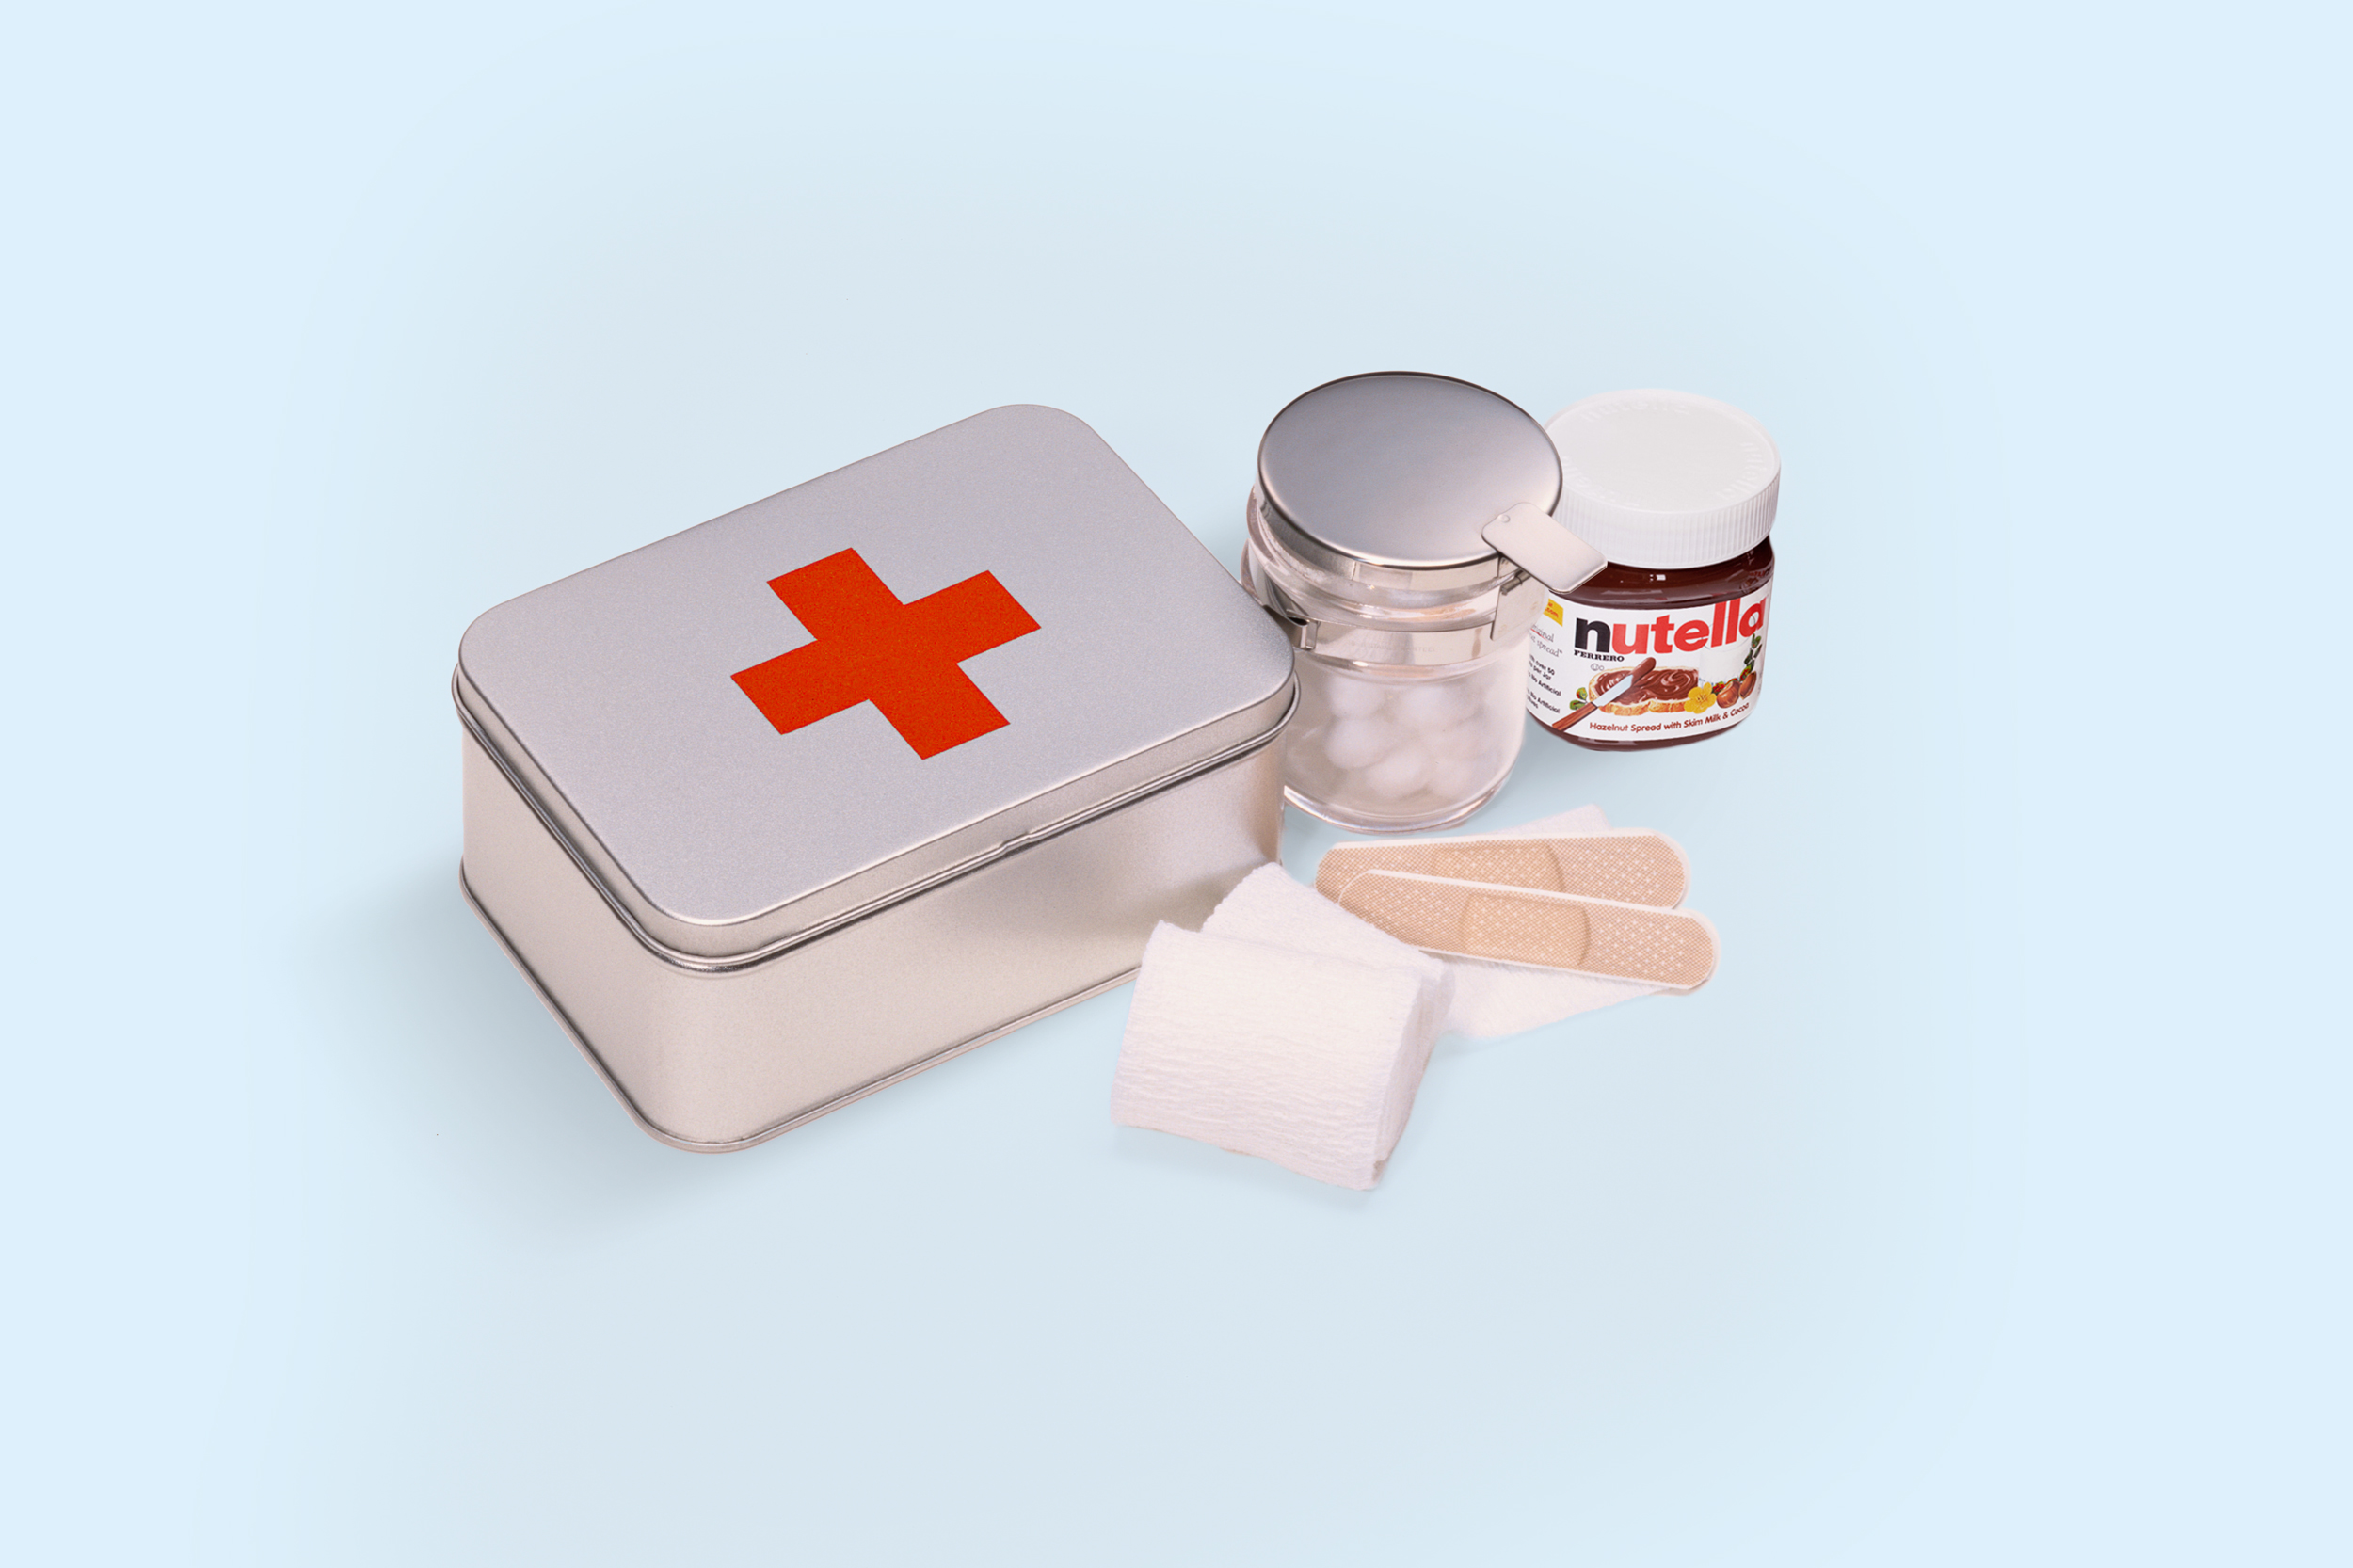 Emotional first aid kit - Contains Nutella